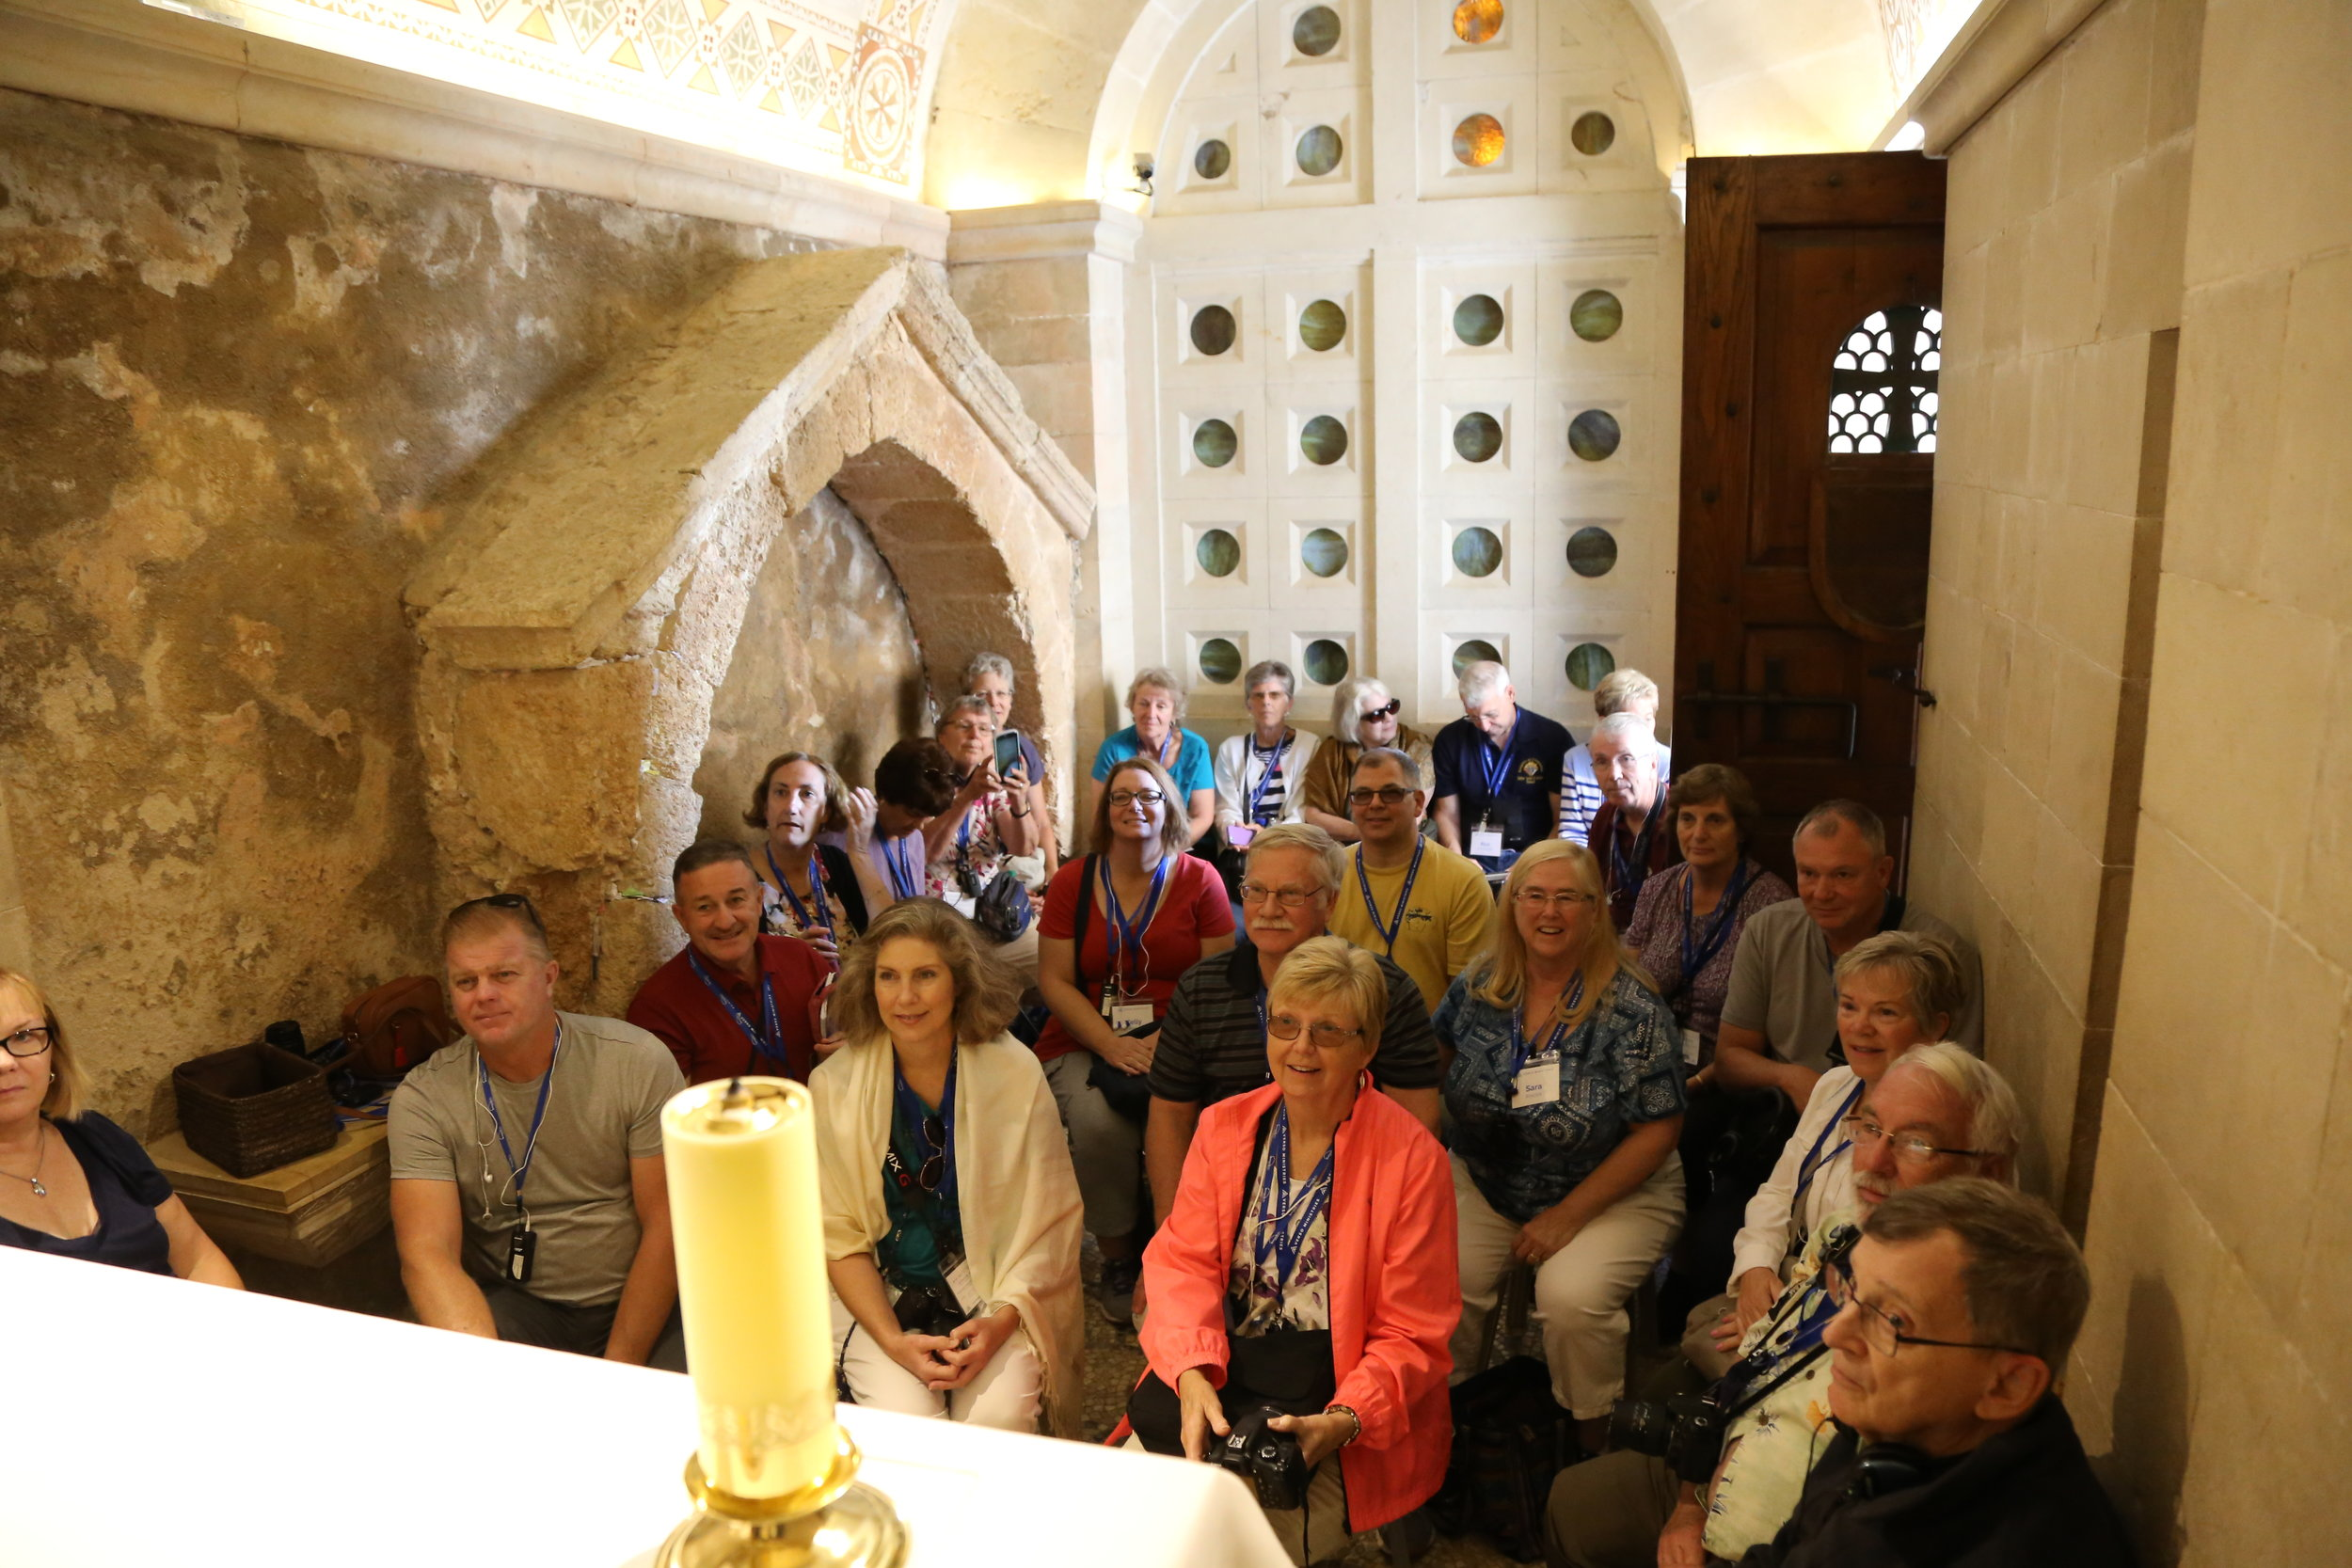 Getting ready to celebrate Mass on top of the Mount of Transfiguration. They elected to stay in the cramped chapel, rather than outside.